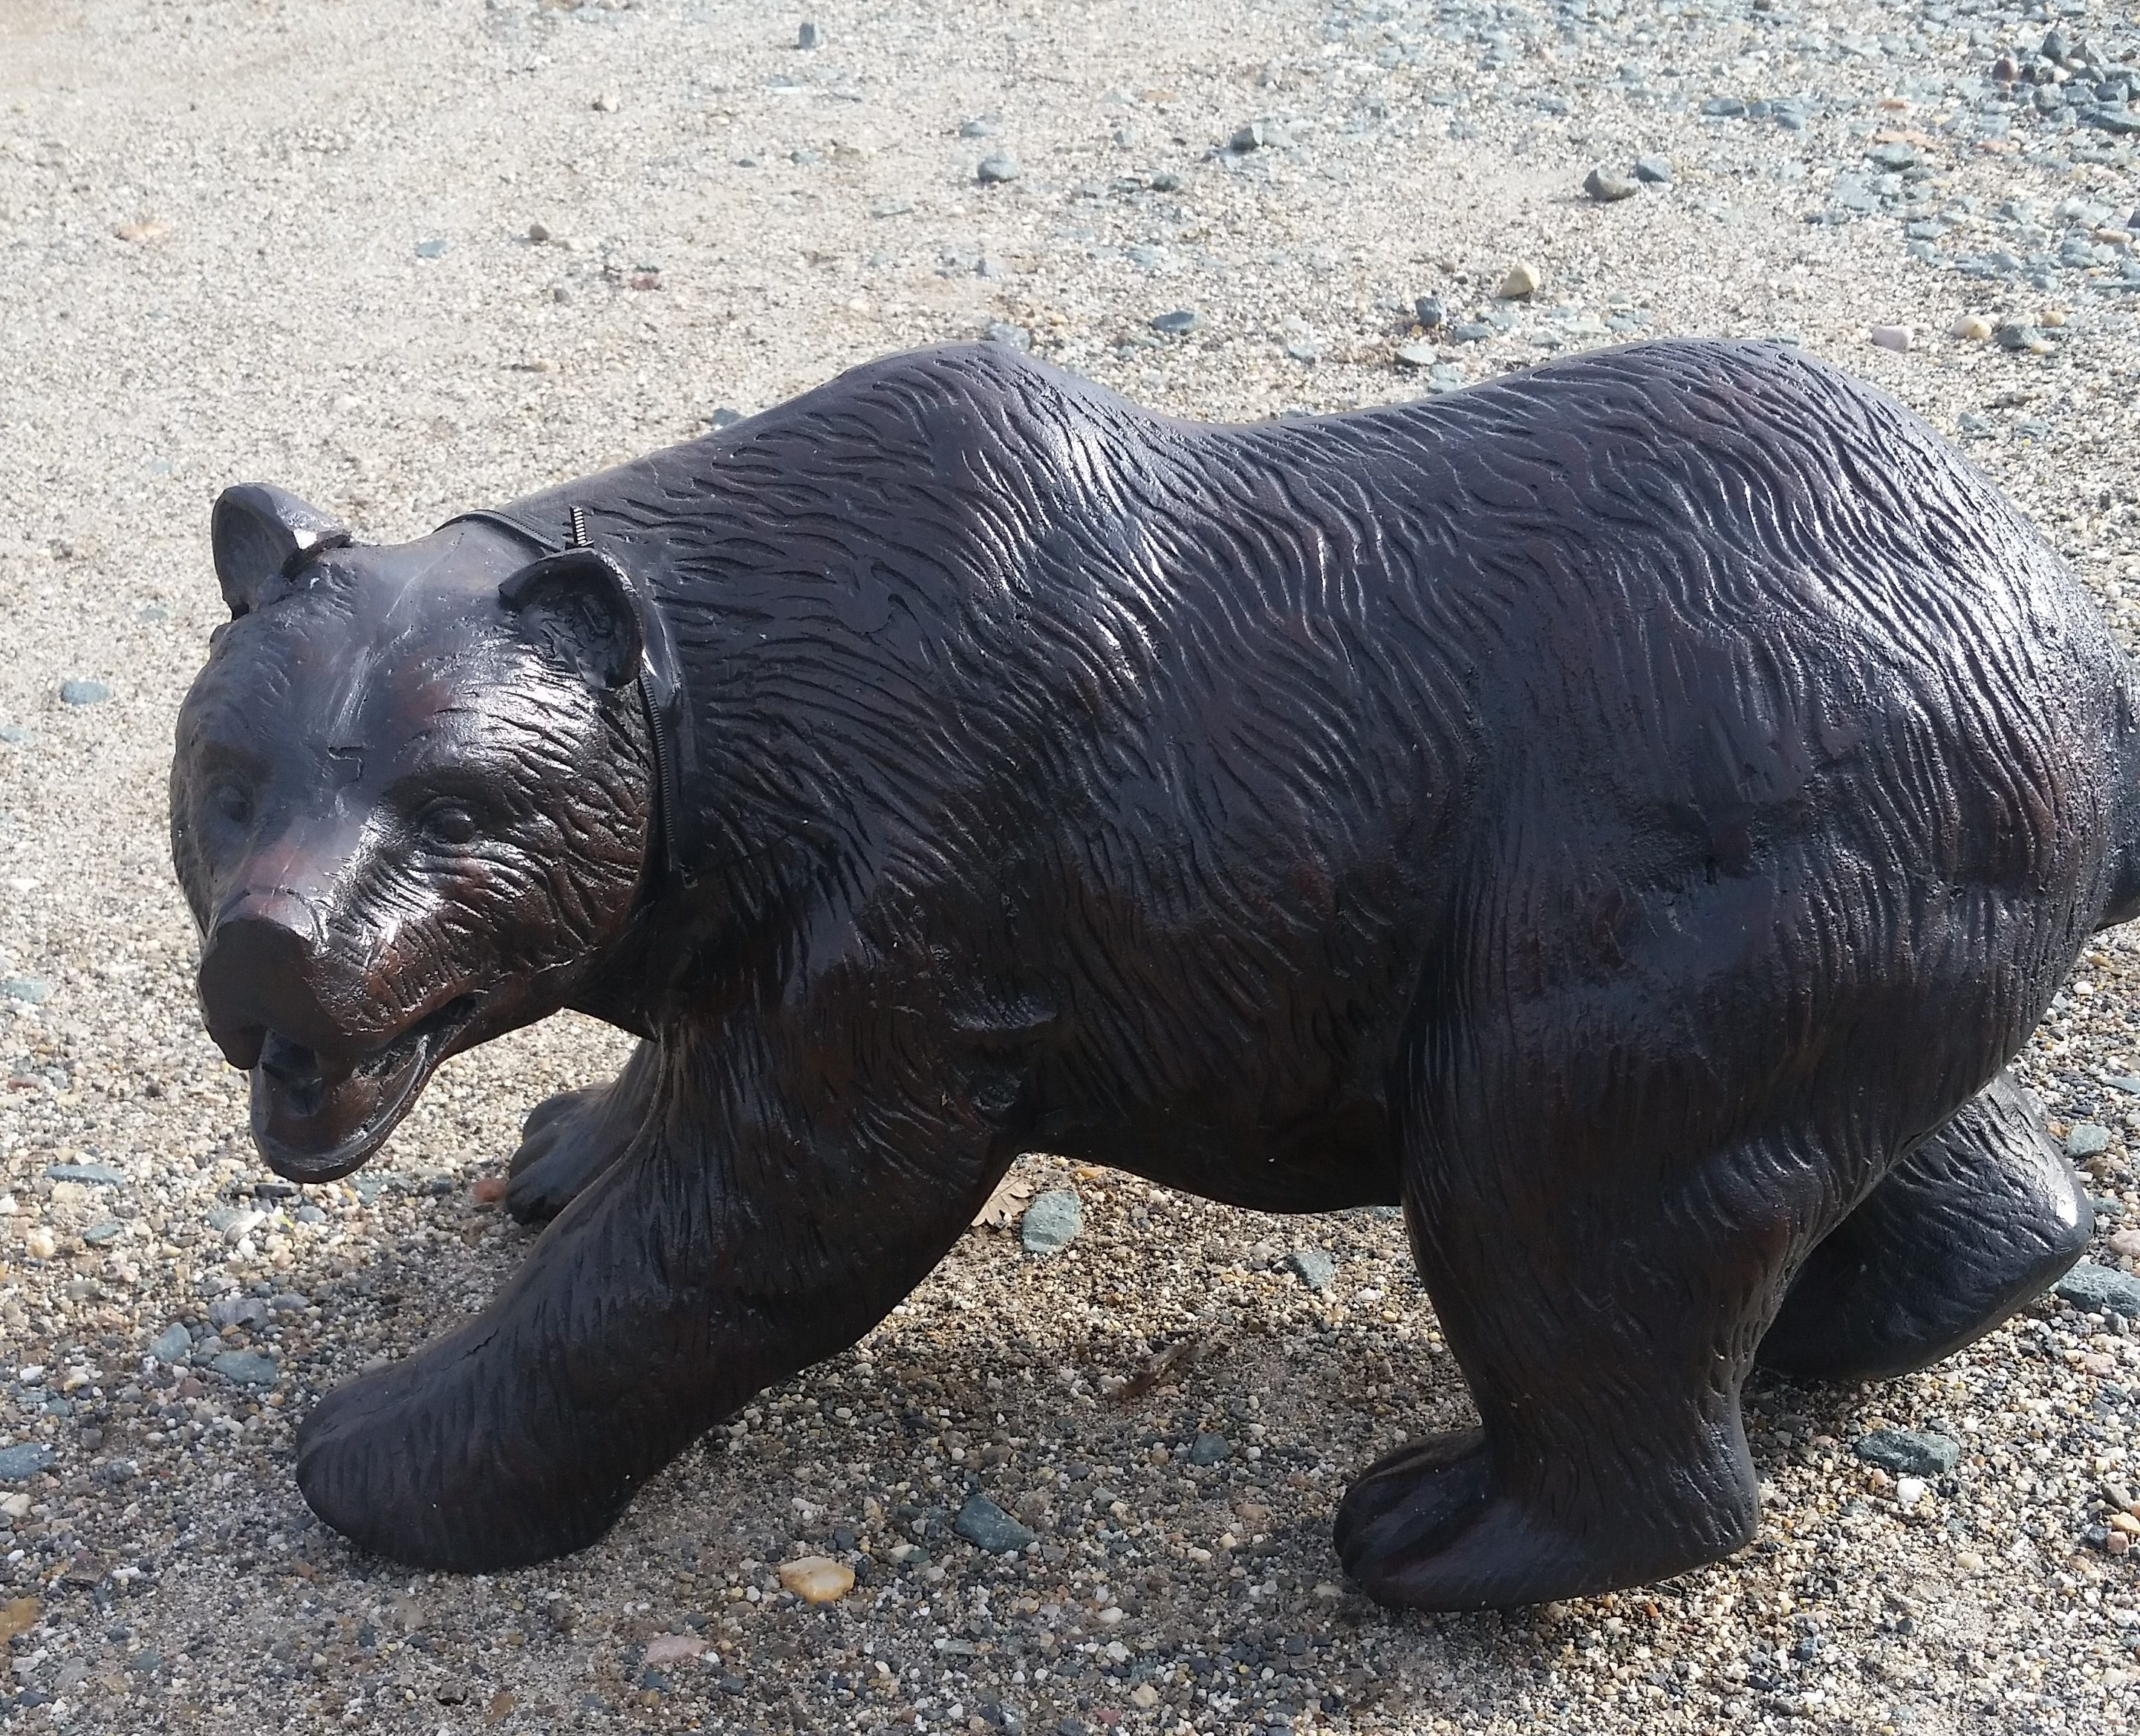 Small Grizzly Bear Garden Statue 15 Quot For Desk Or Yard